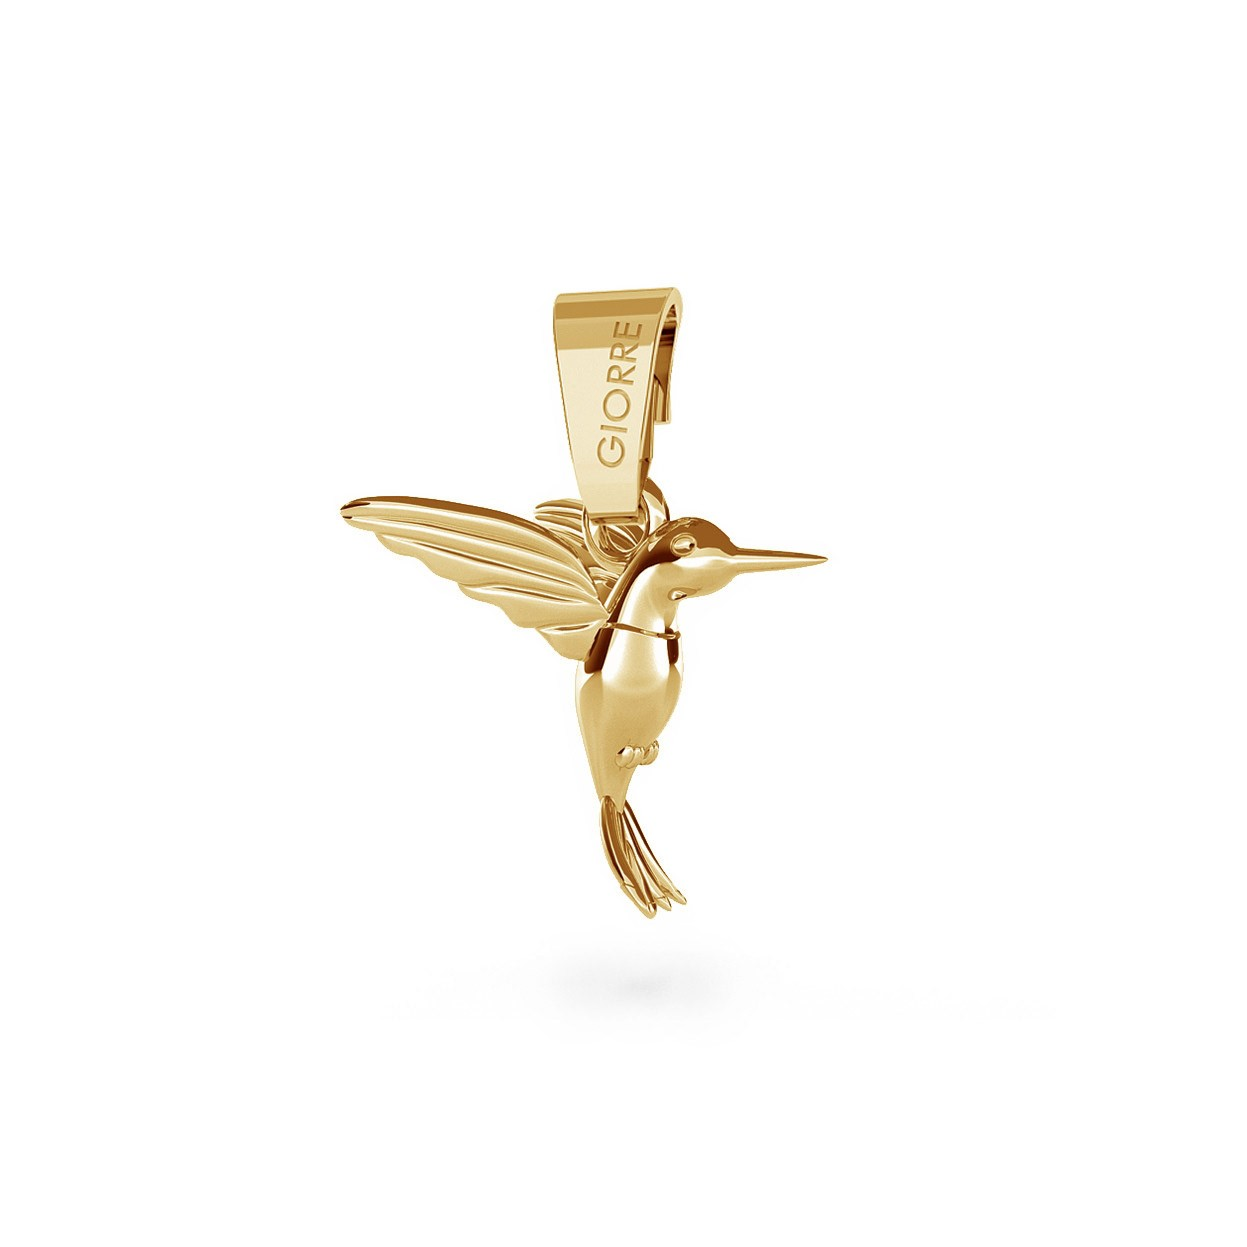 CHARM 20, HUMMING-BIRD, SILVER 925, RHODIUM OR GOLD PLATED